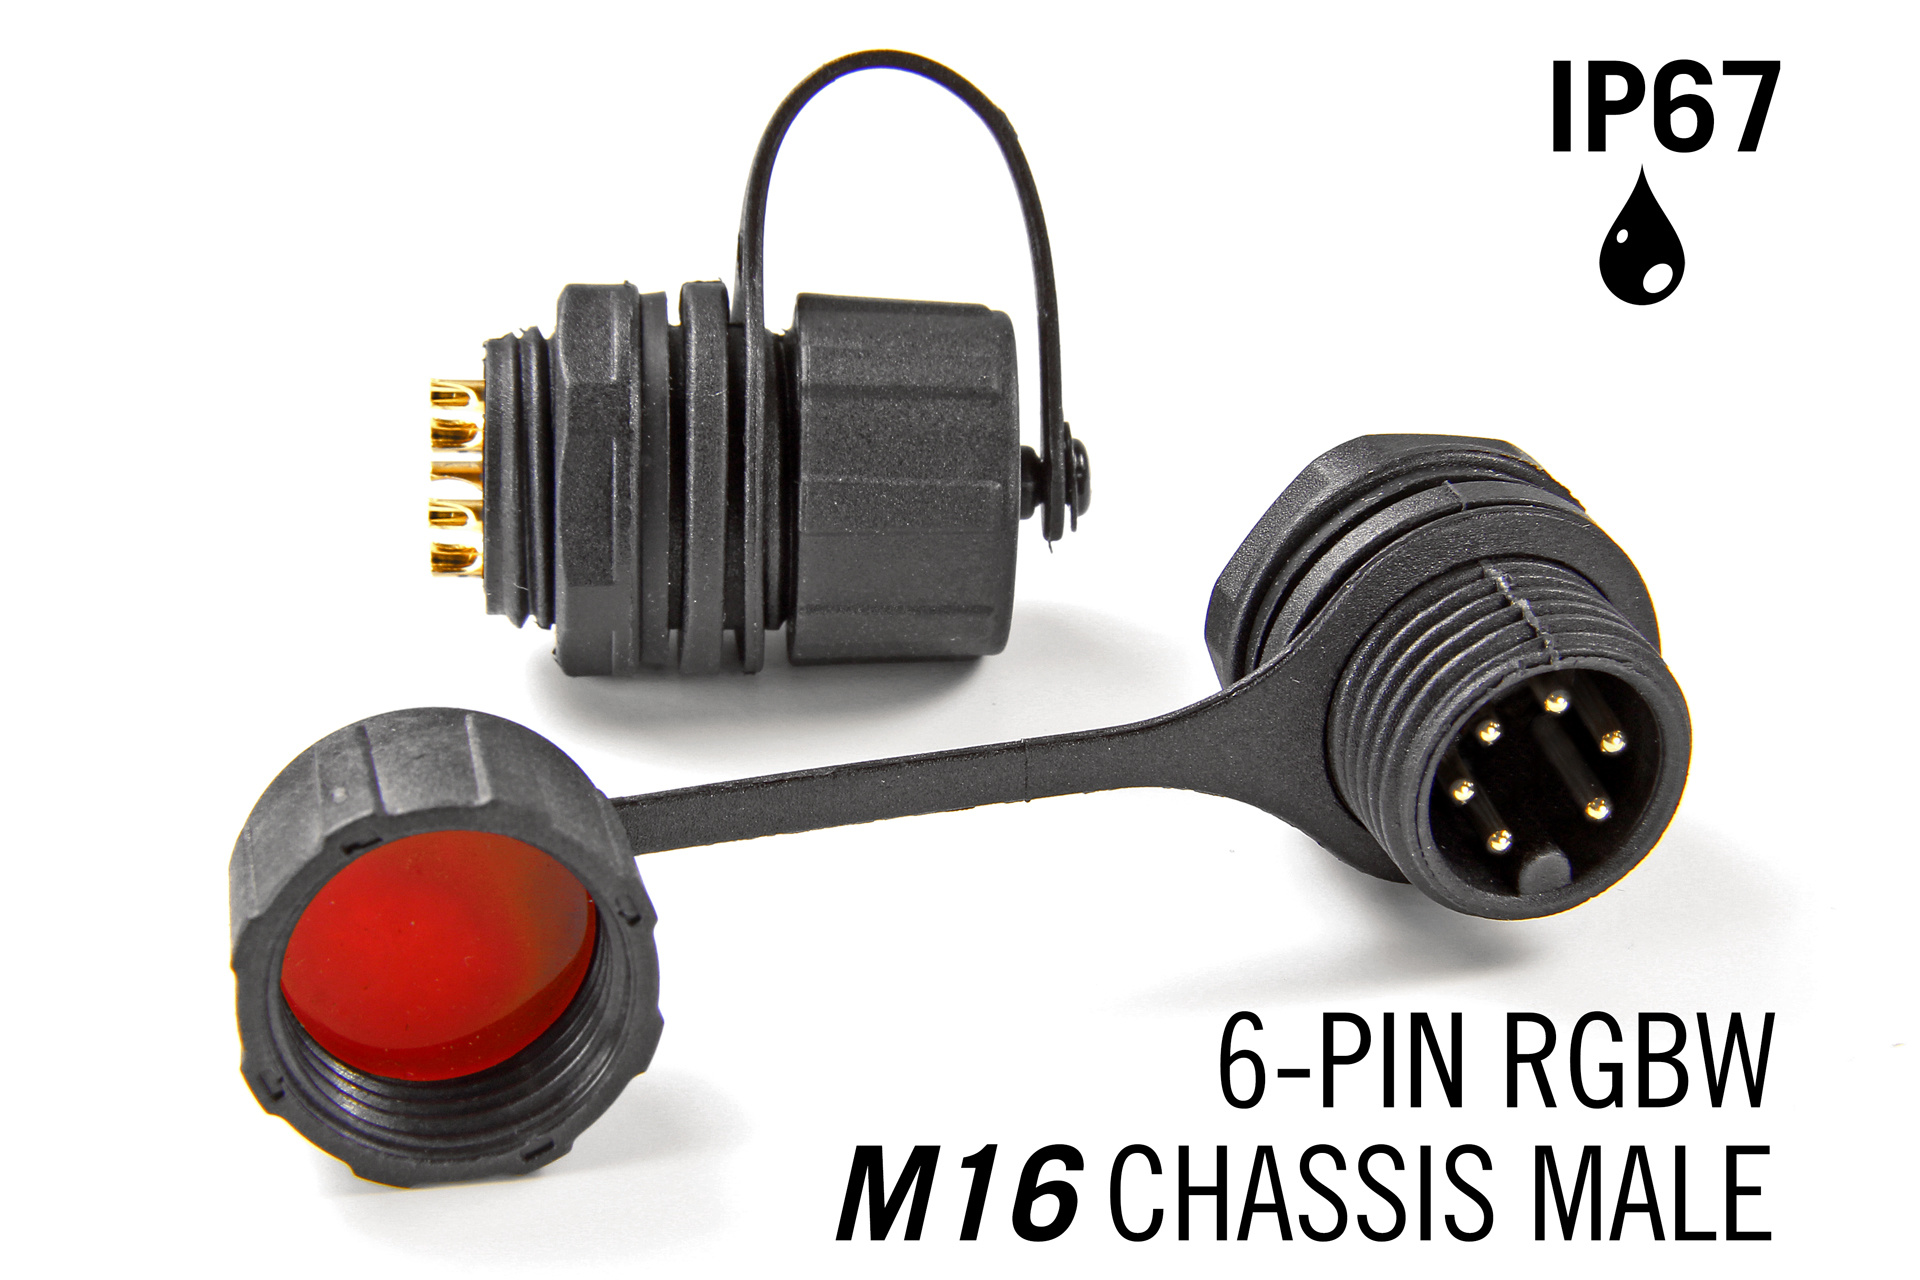 M16 6 Pin Male Chassis Connector IP67 Waterdichte RGBWW / RGBCCT